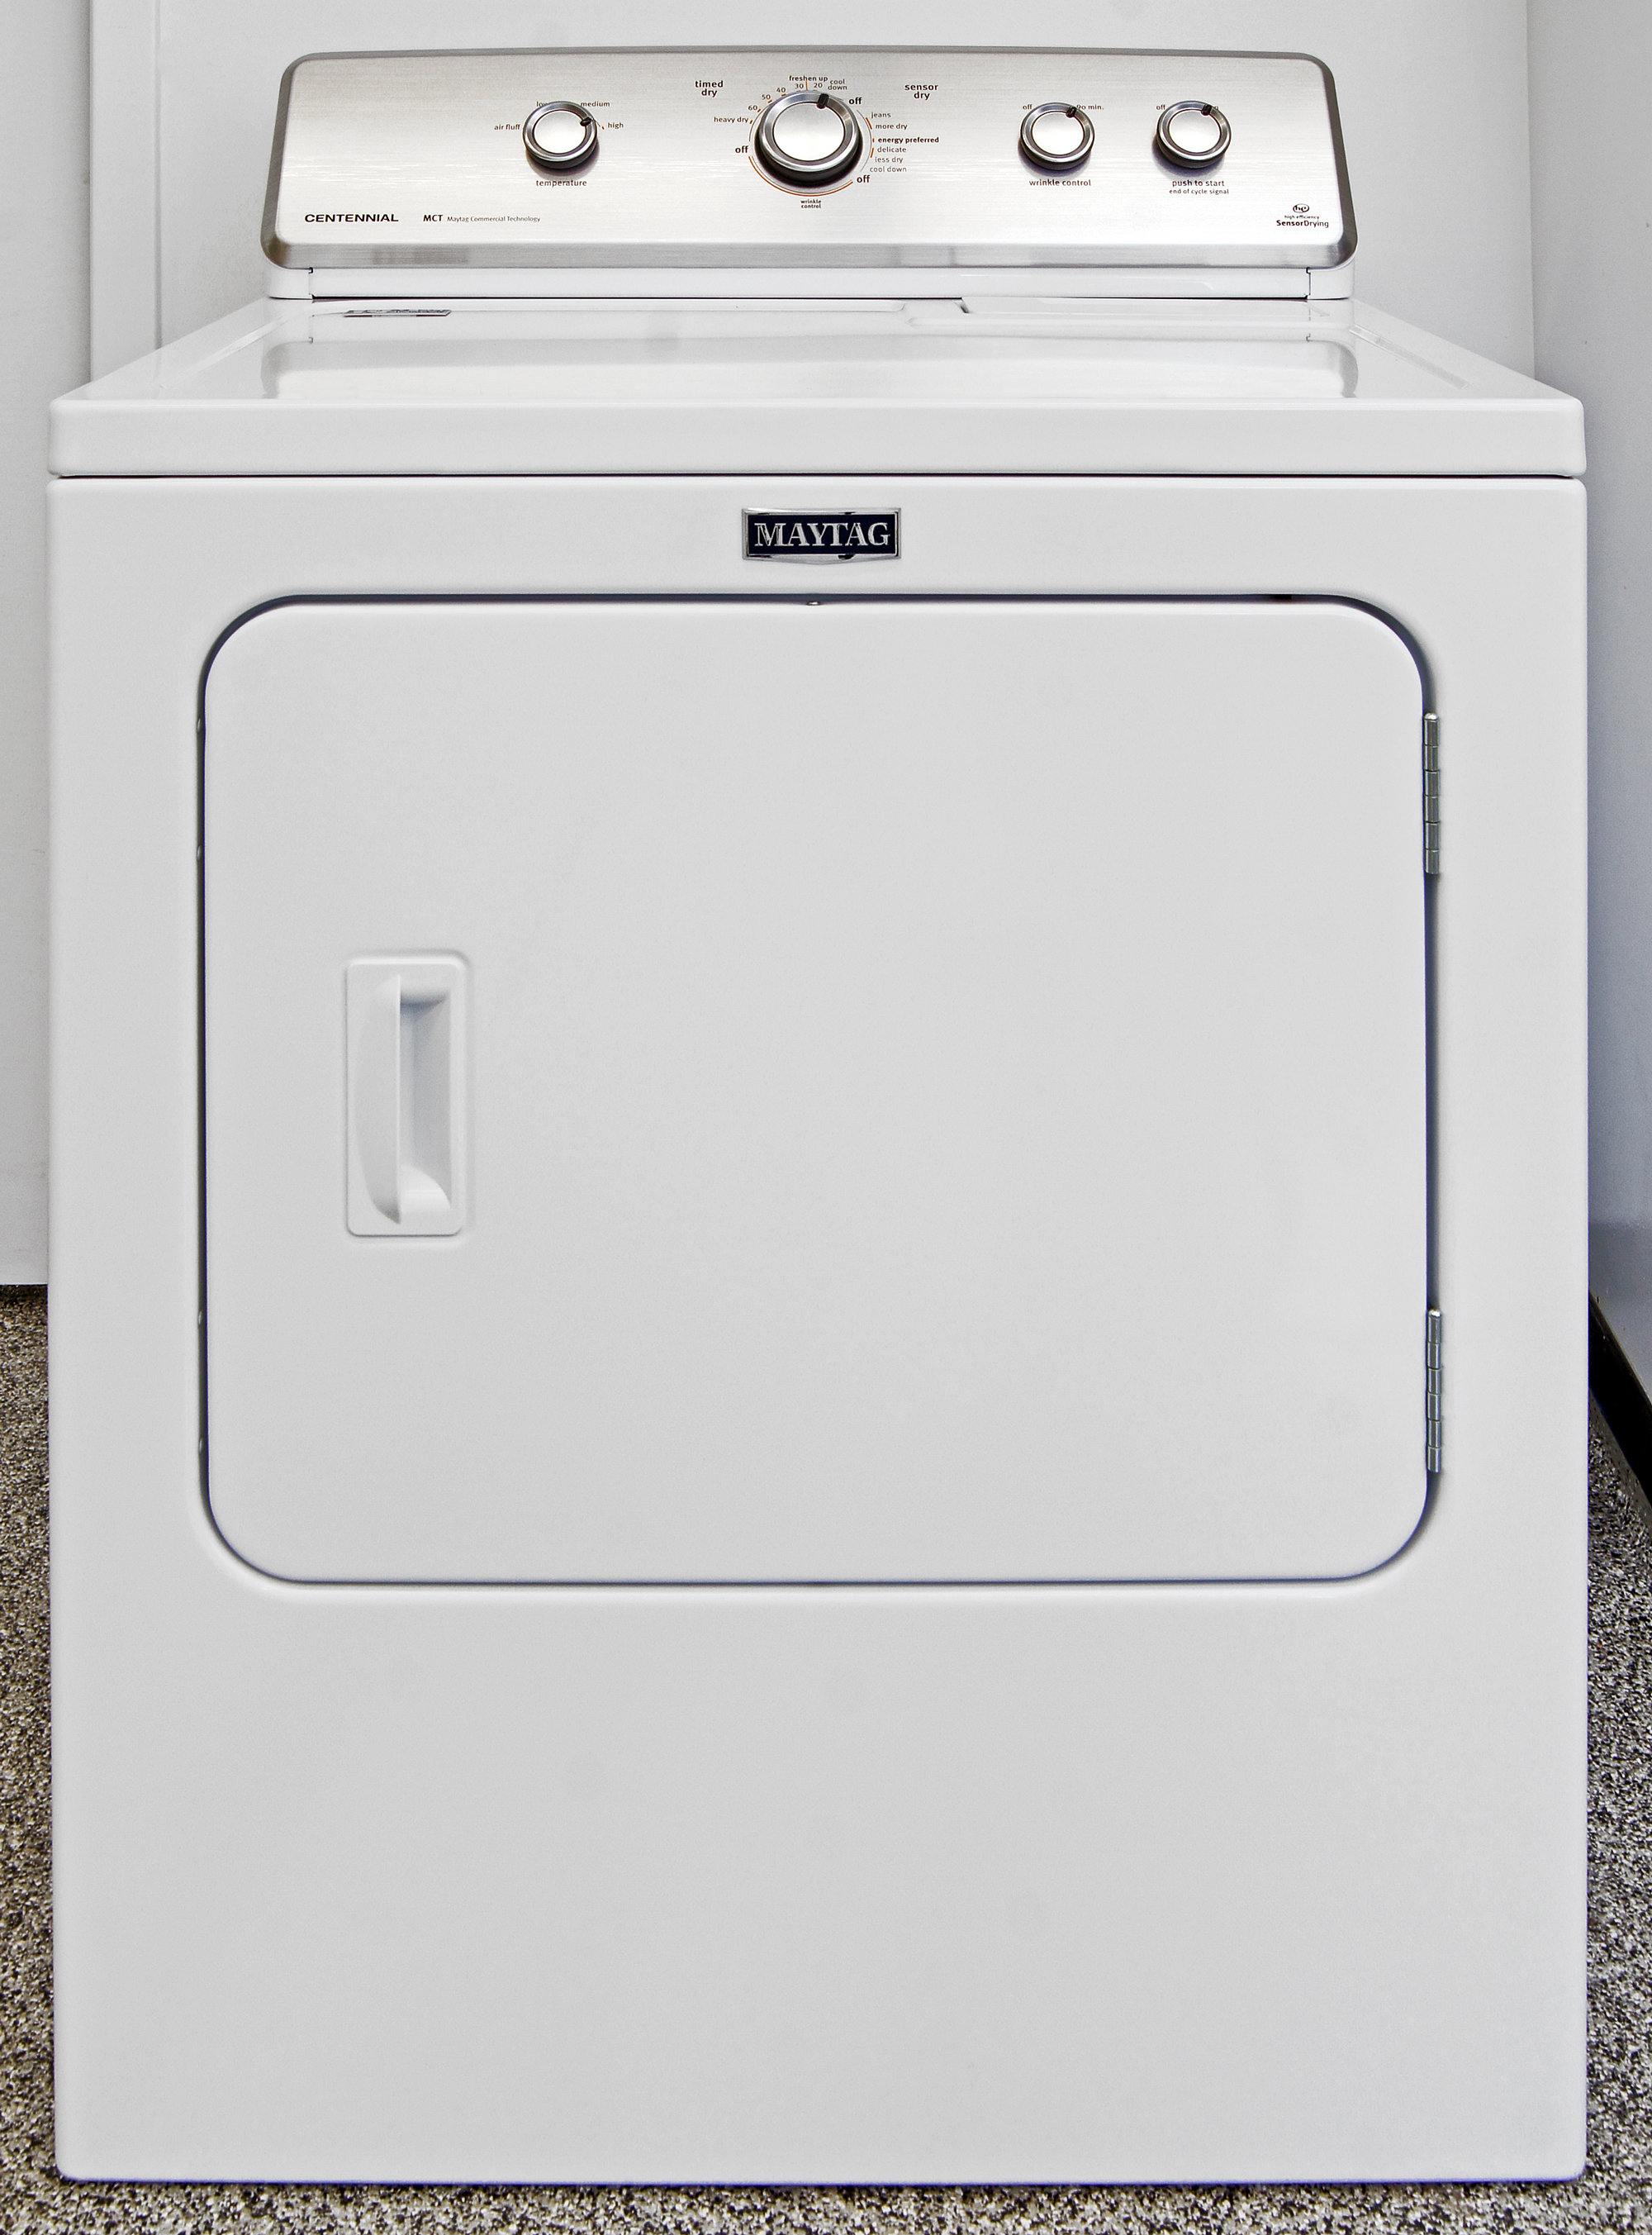 The old-school Maytag Centennial MEDC555DW dryer is as straightforward as they come.